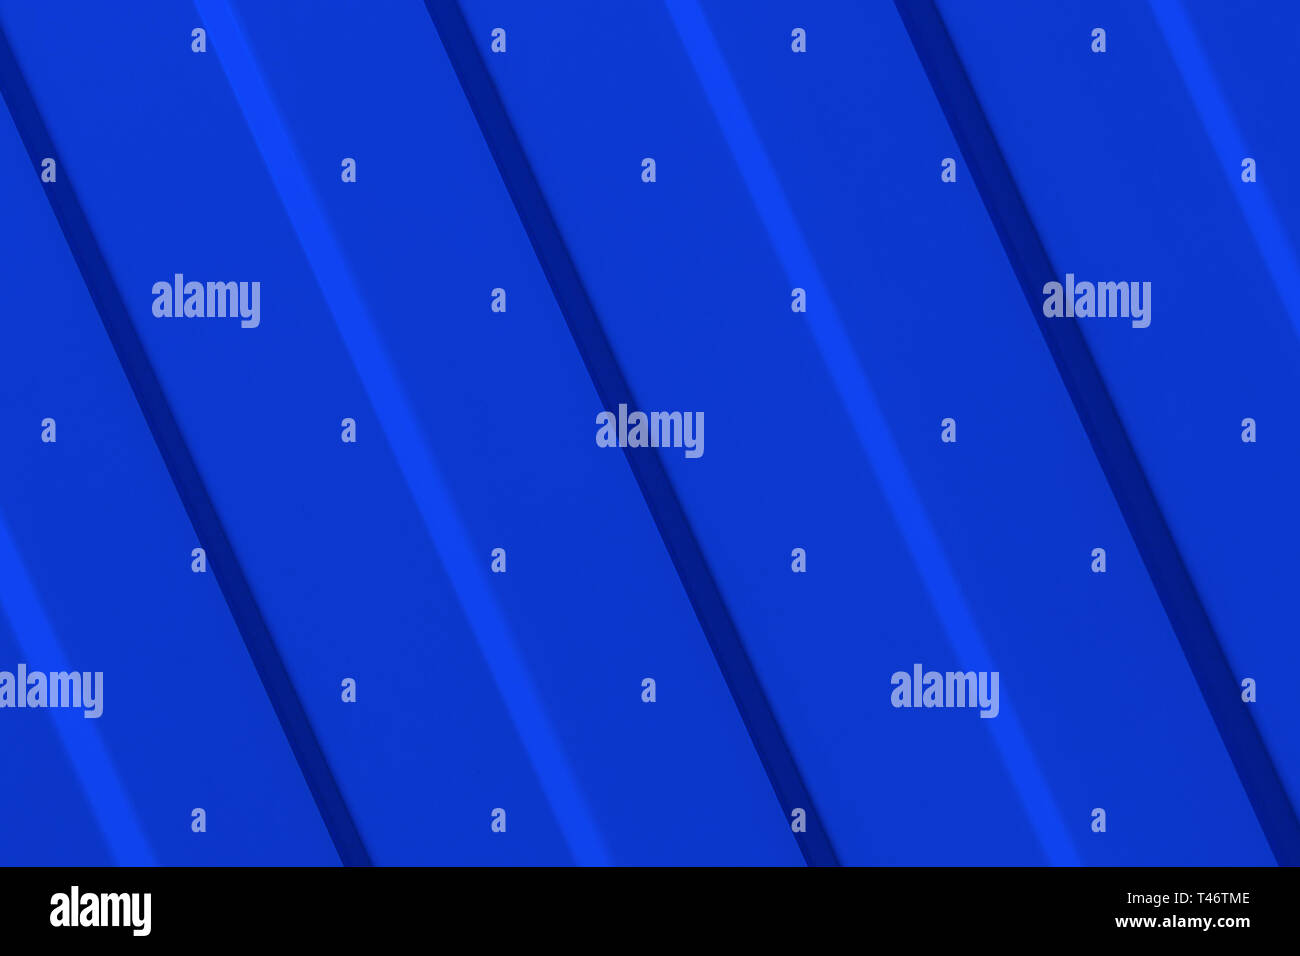 The surface of the metal profiled panel in blue close-up. Diagonal guides. - Stock Image